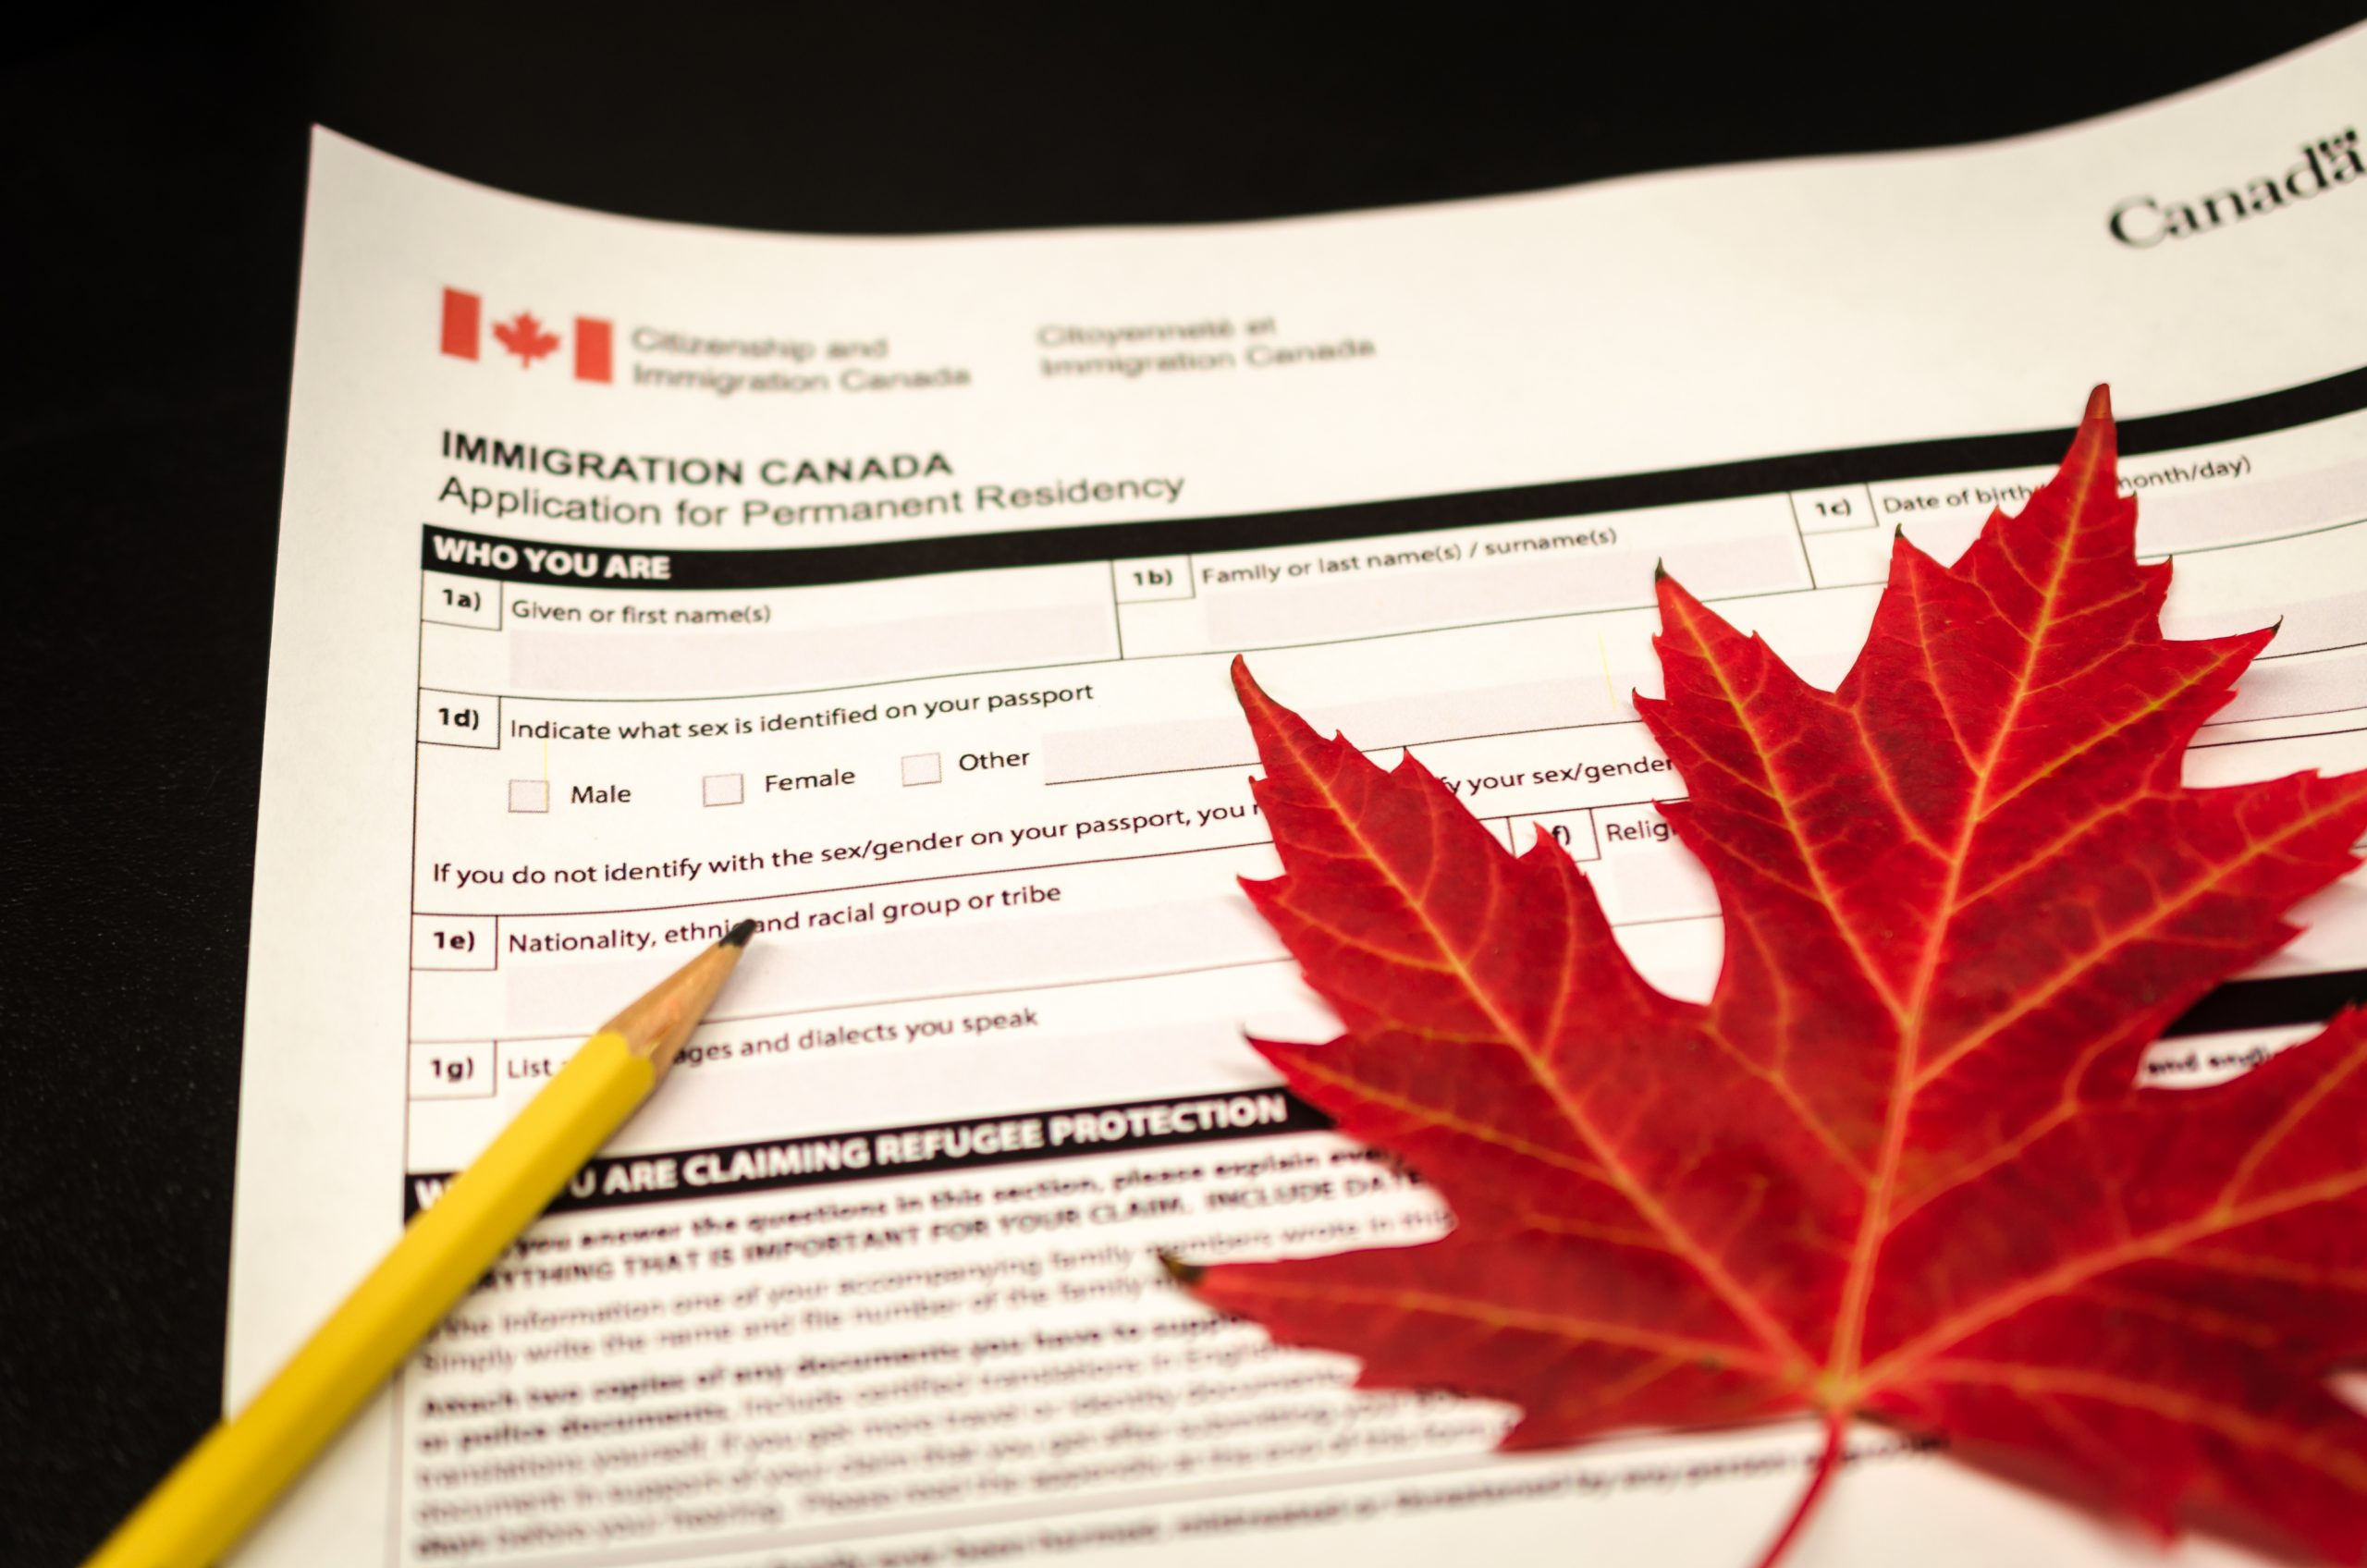 There is an application for Canadian immigration and it is a metaphor for challenges experienced by immigrants due to complex immigration process.